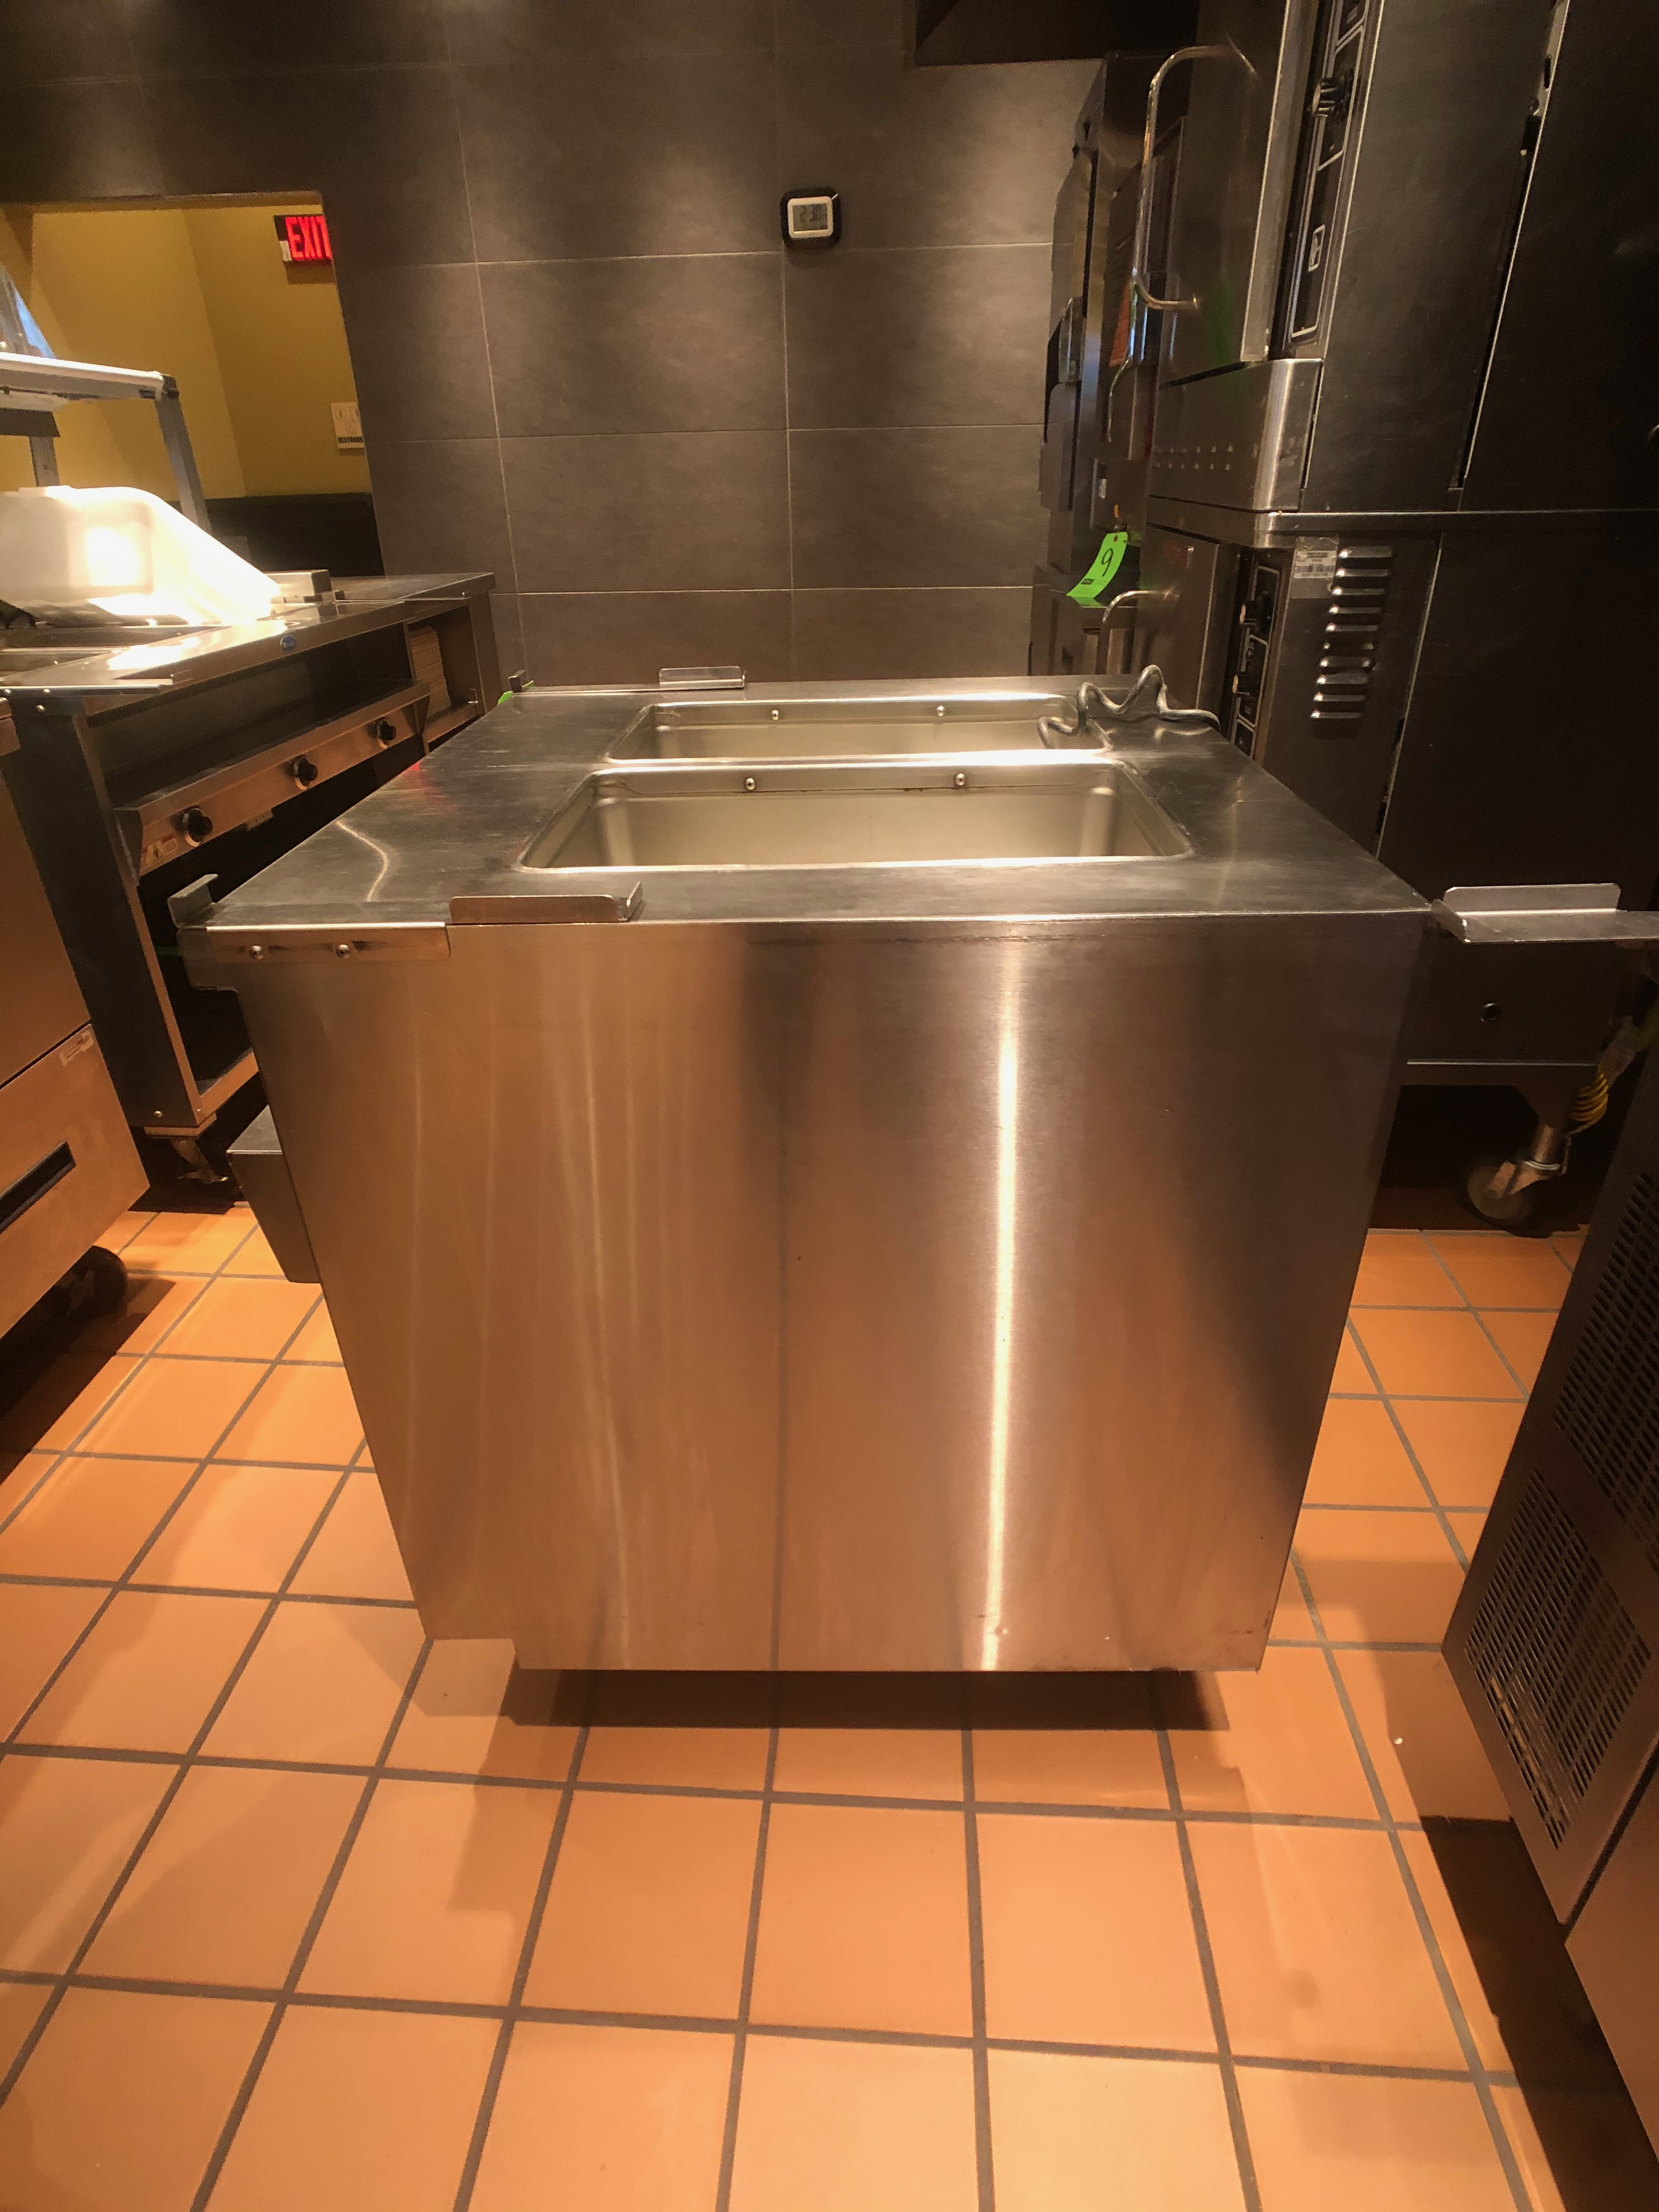 Randell Open Base Electric Hot Food Table, Model 31330, S/N W1041765-1 - Image 4 of 5